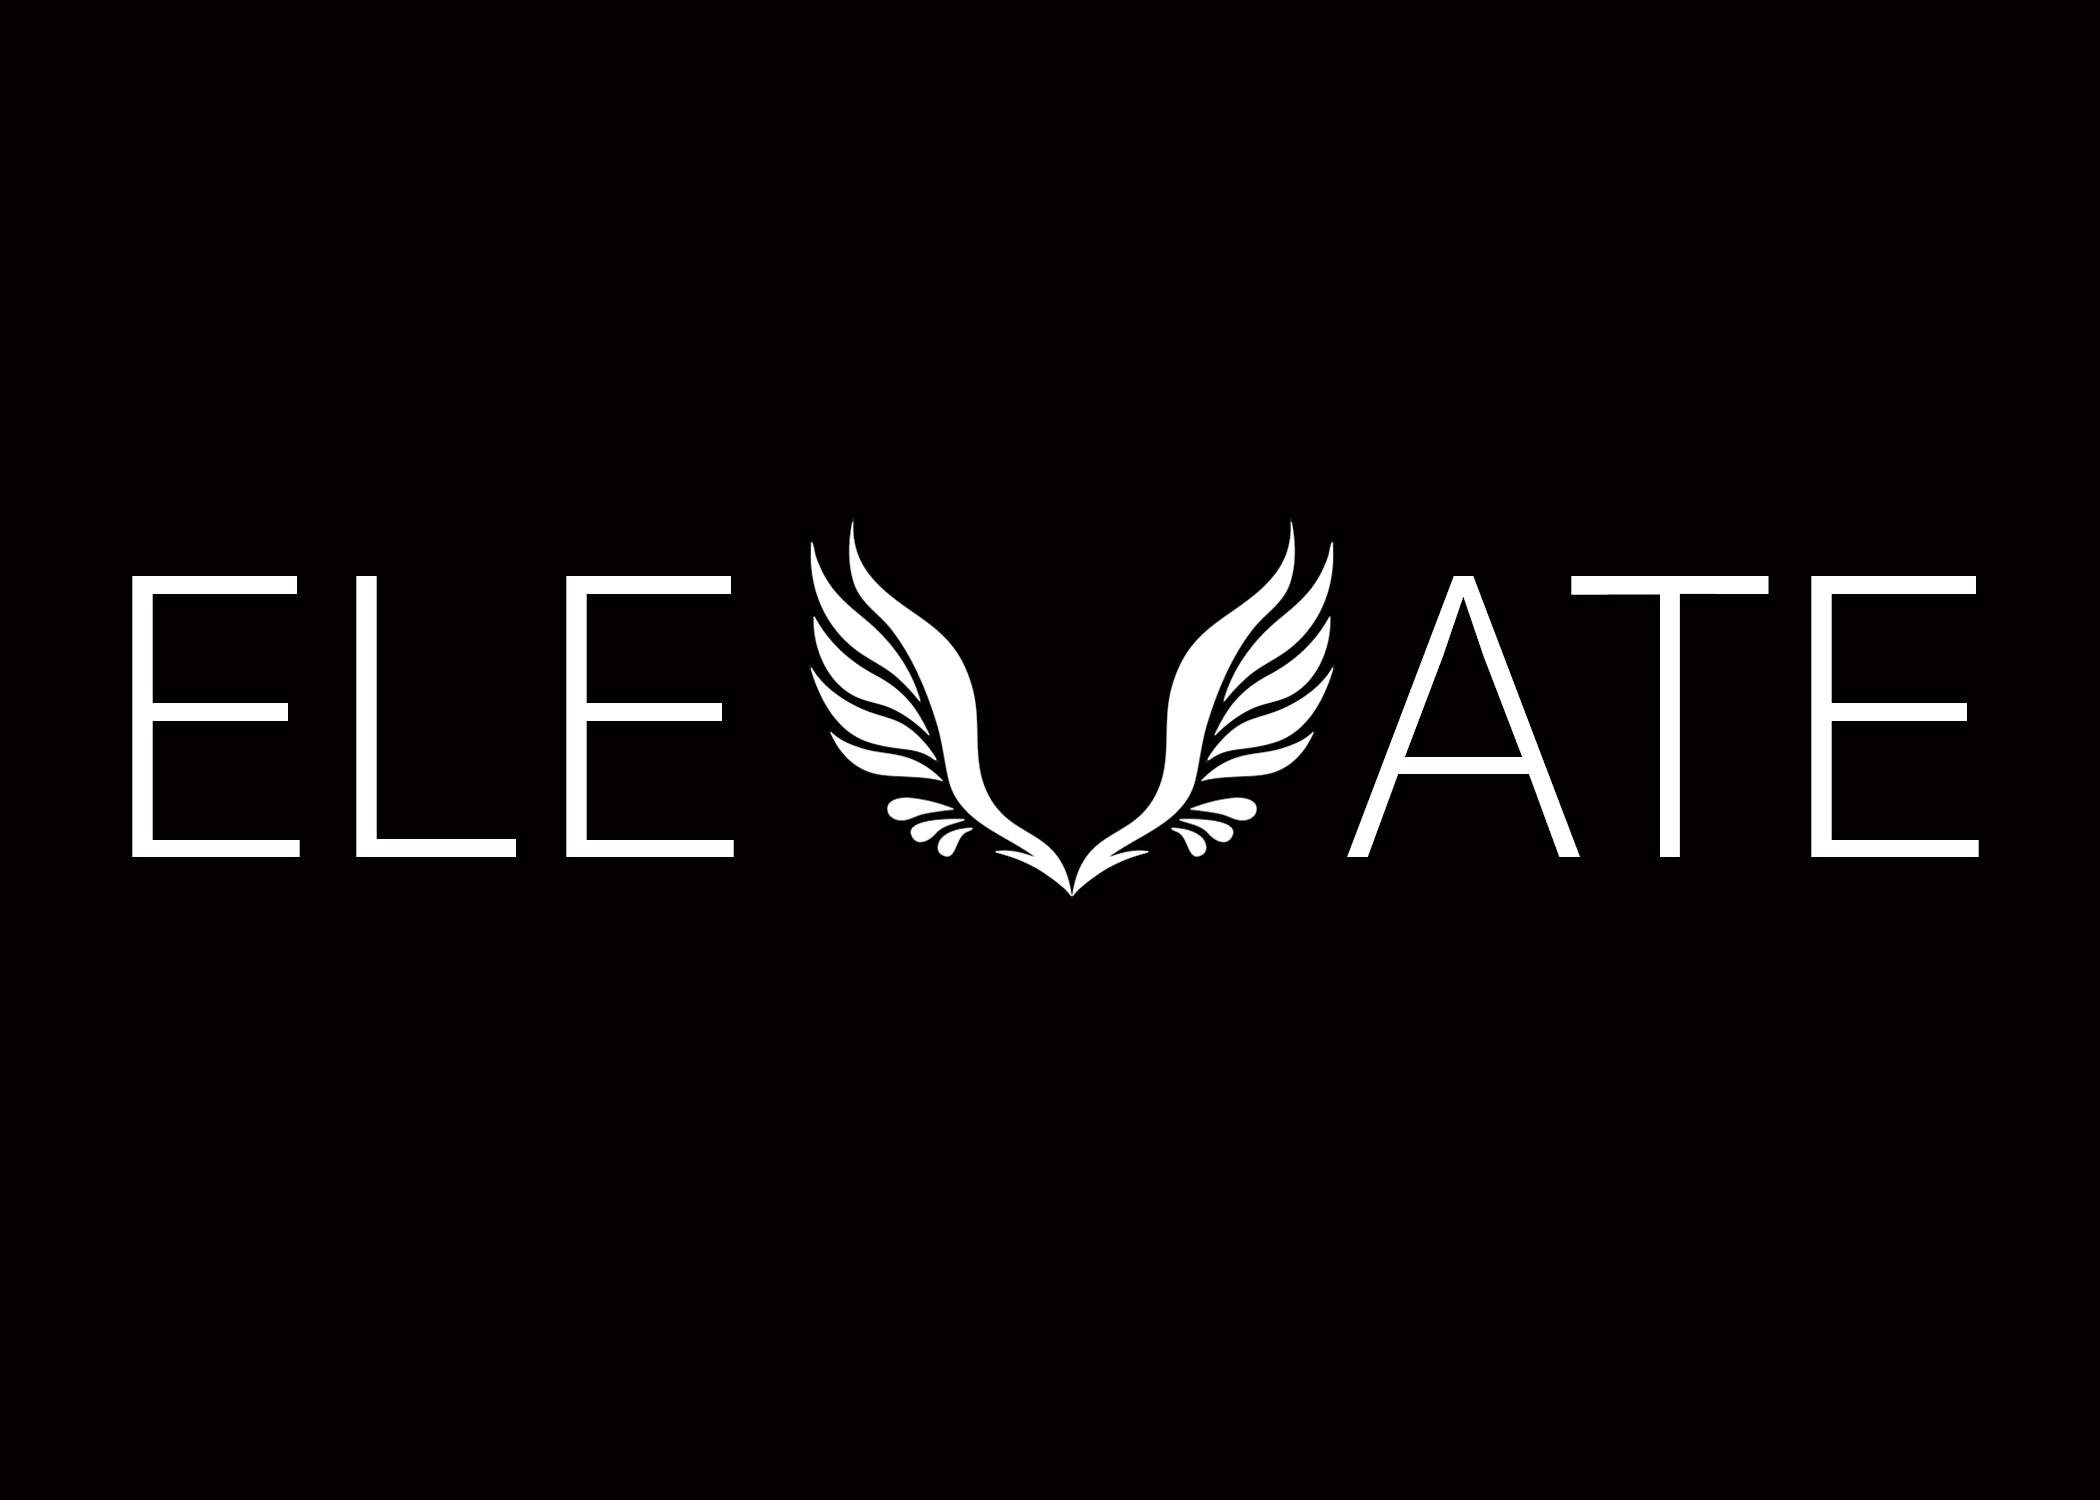 Black Background Elevate Logo.jpg